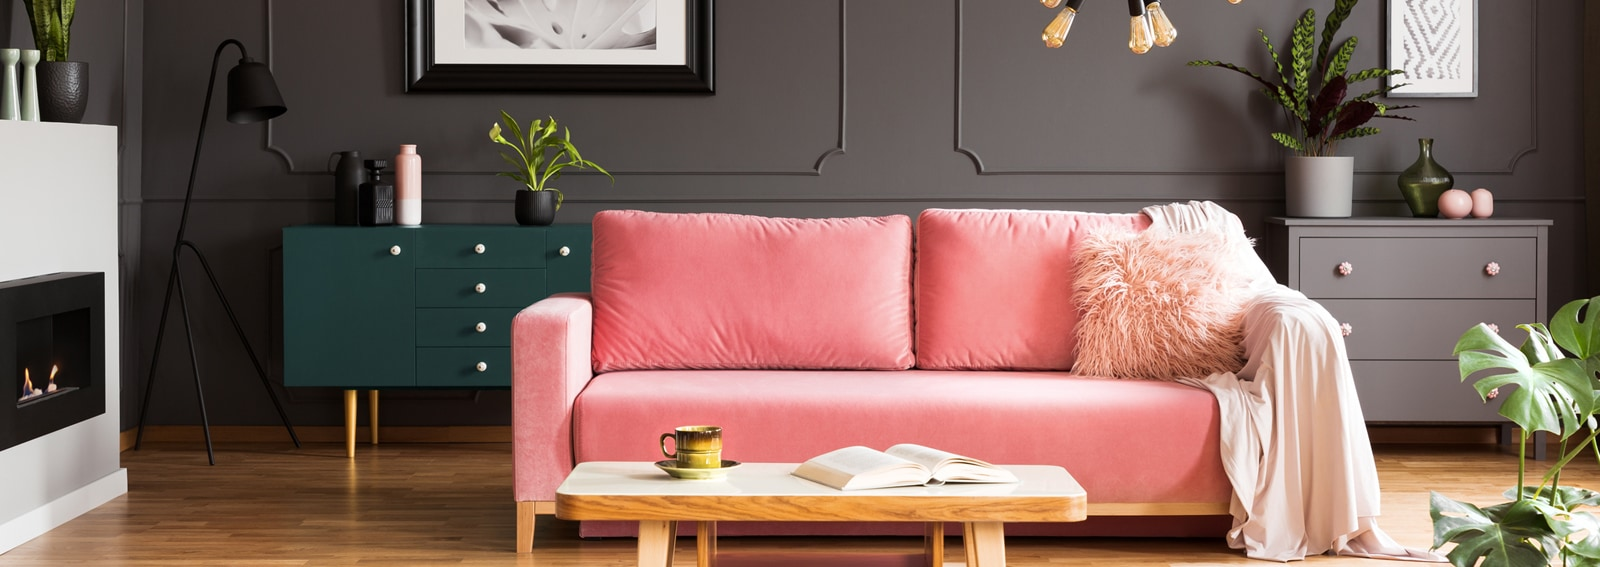 Wooden coffee table with tea cup and open book standing on carpet in dark living room interior with powder pink lounge with fur cushion and blanket